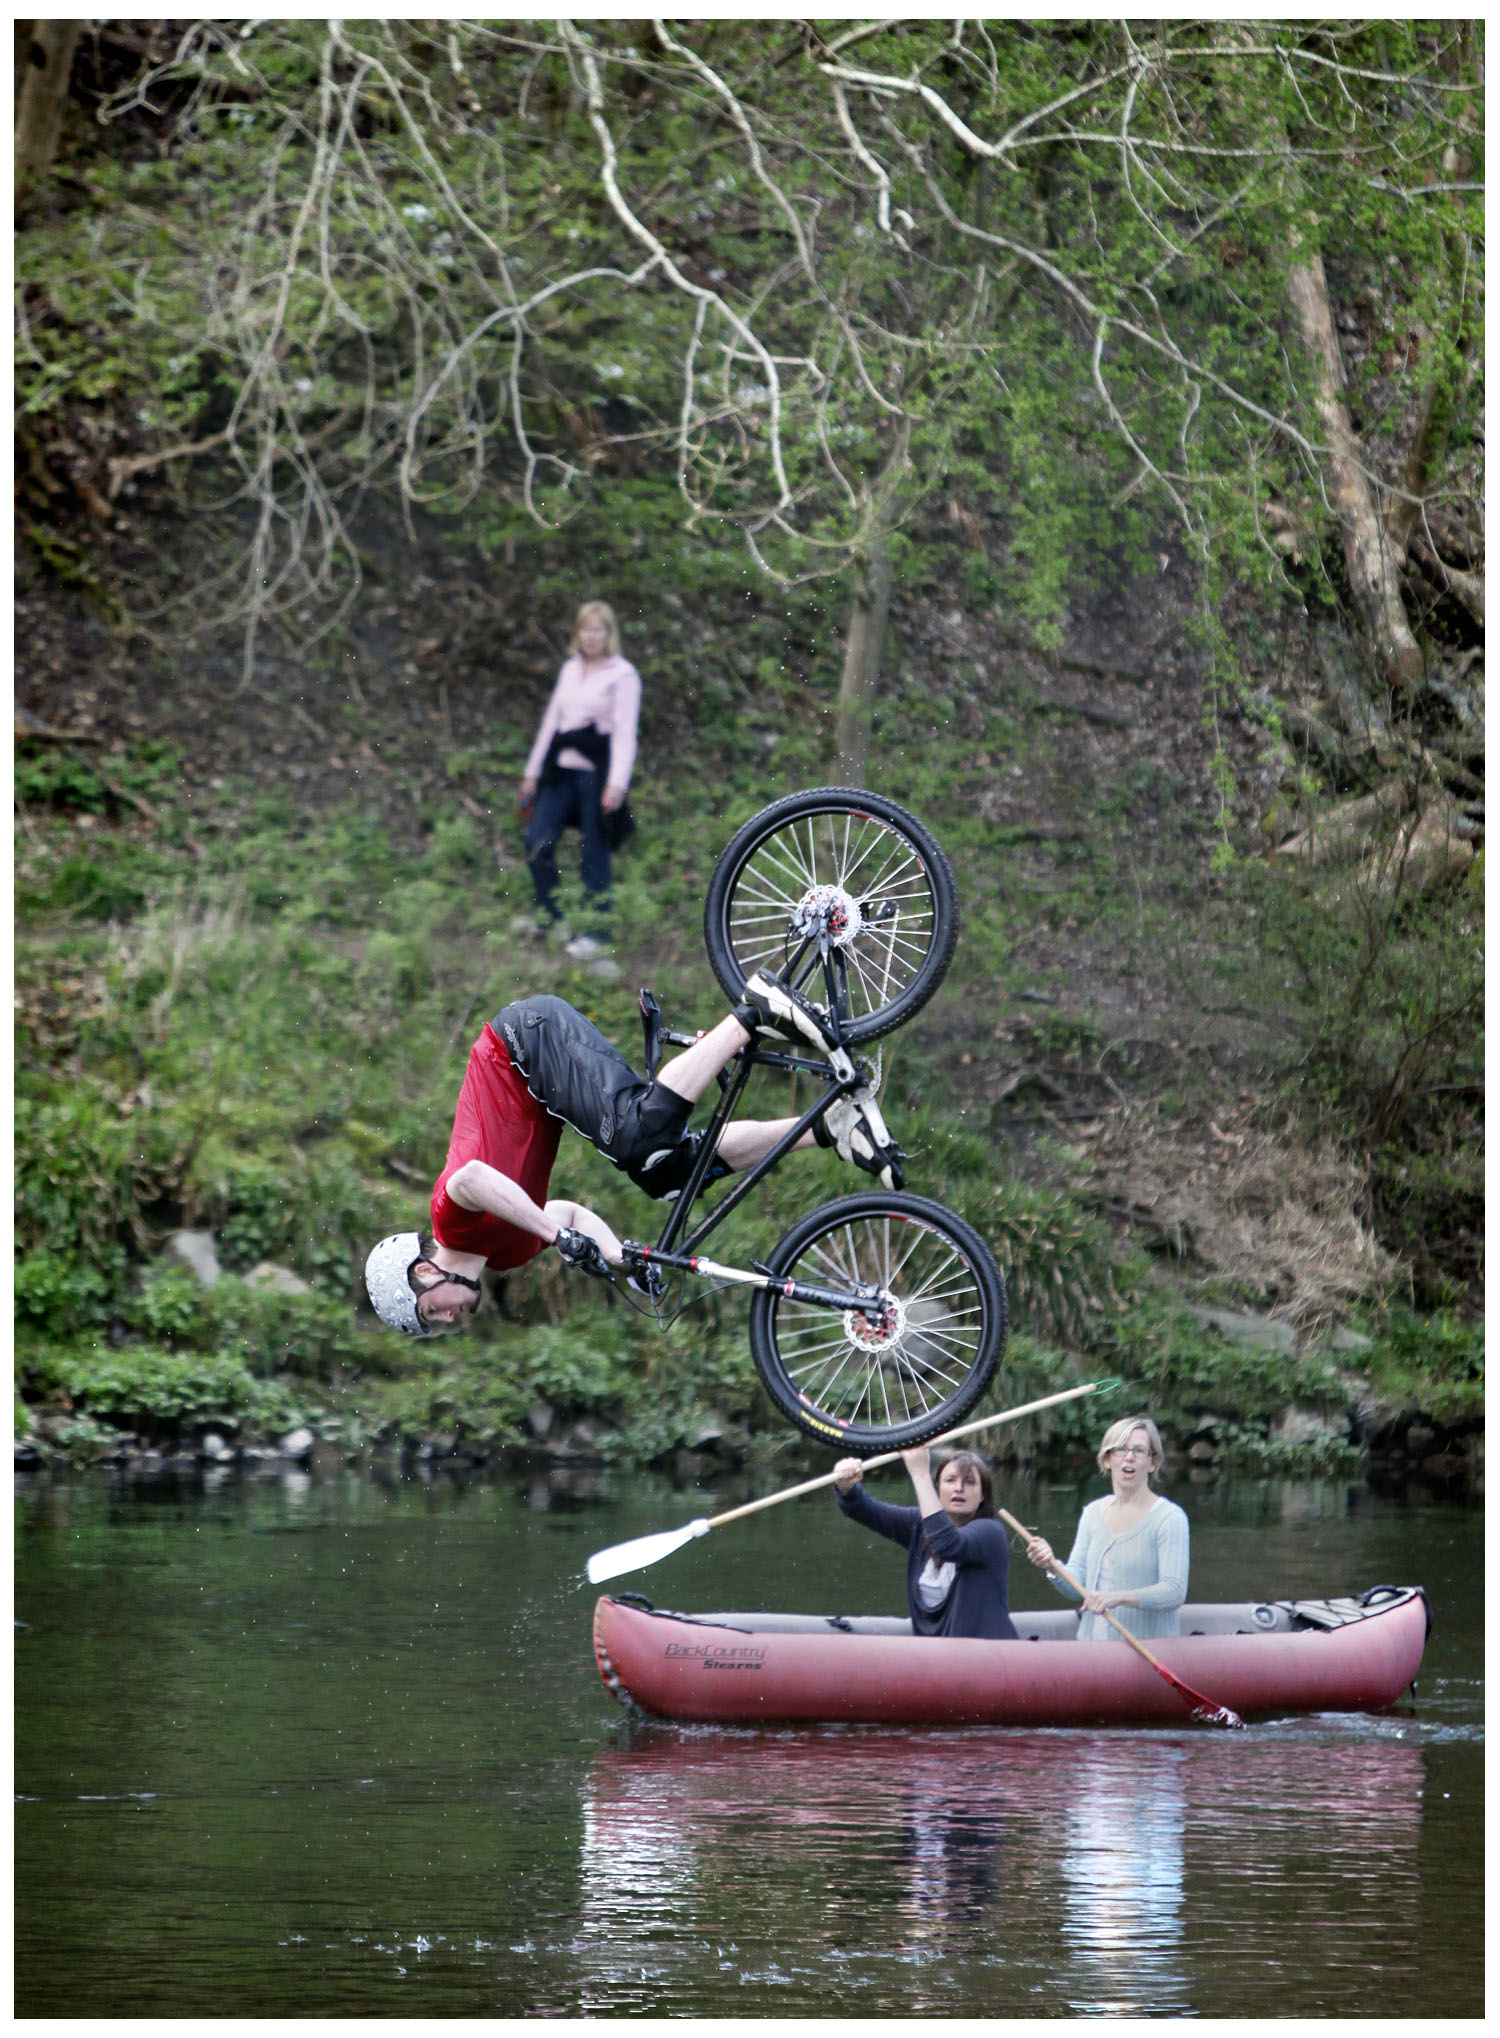 Bikers - they're worse than spawning salmon. Just need to hit them with the paddle...